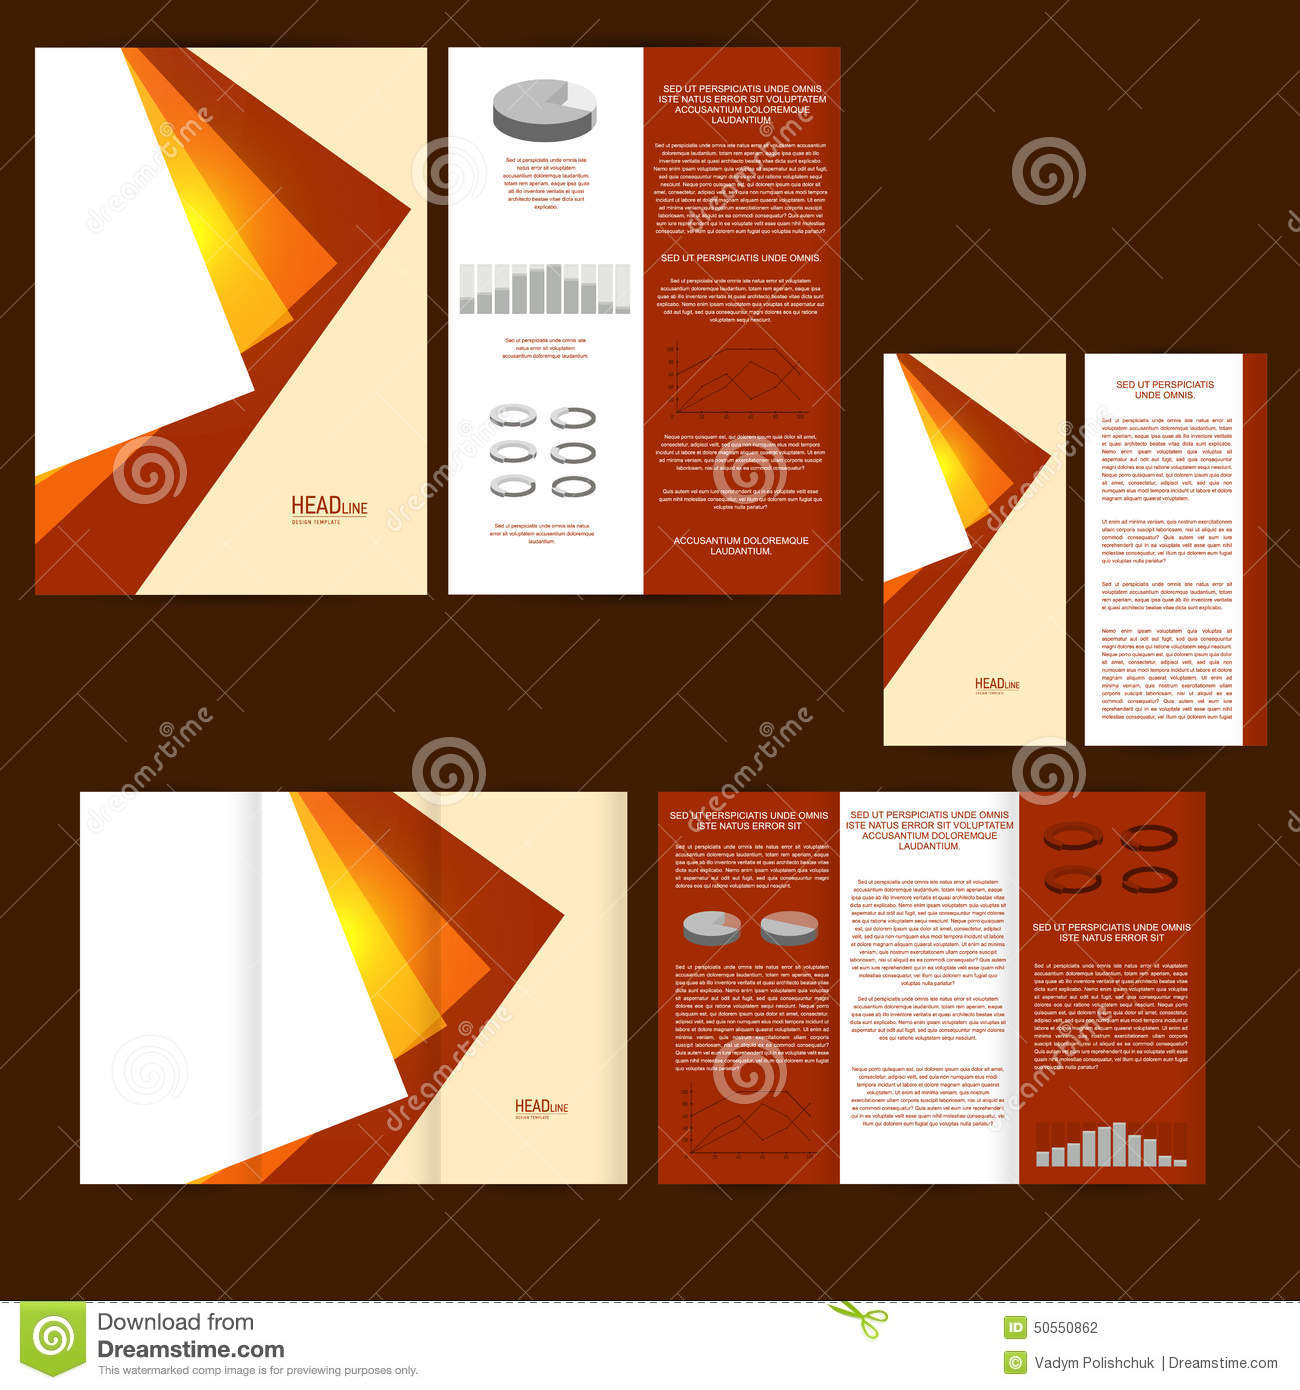 Poster design and printing - Set Of Design Template With Flyer Poster Brochure For Advertising Corporate Identity